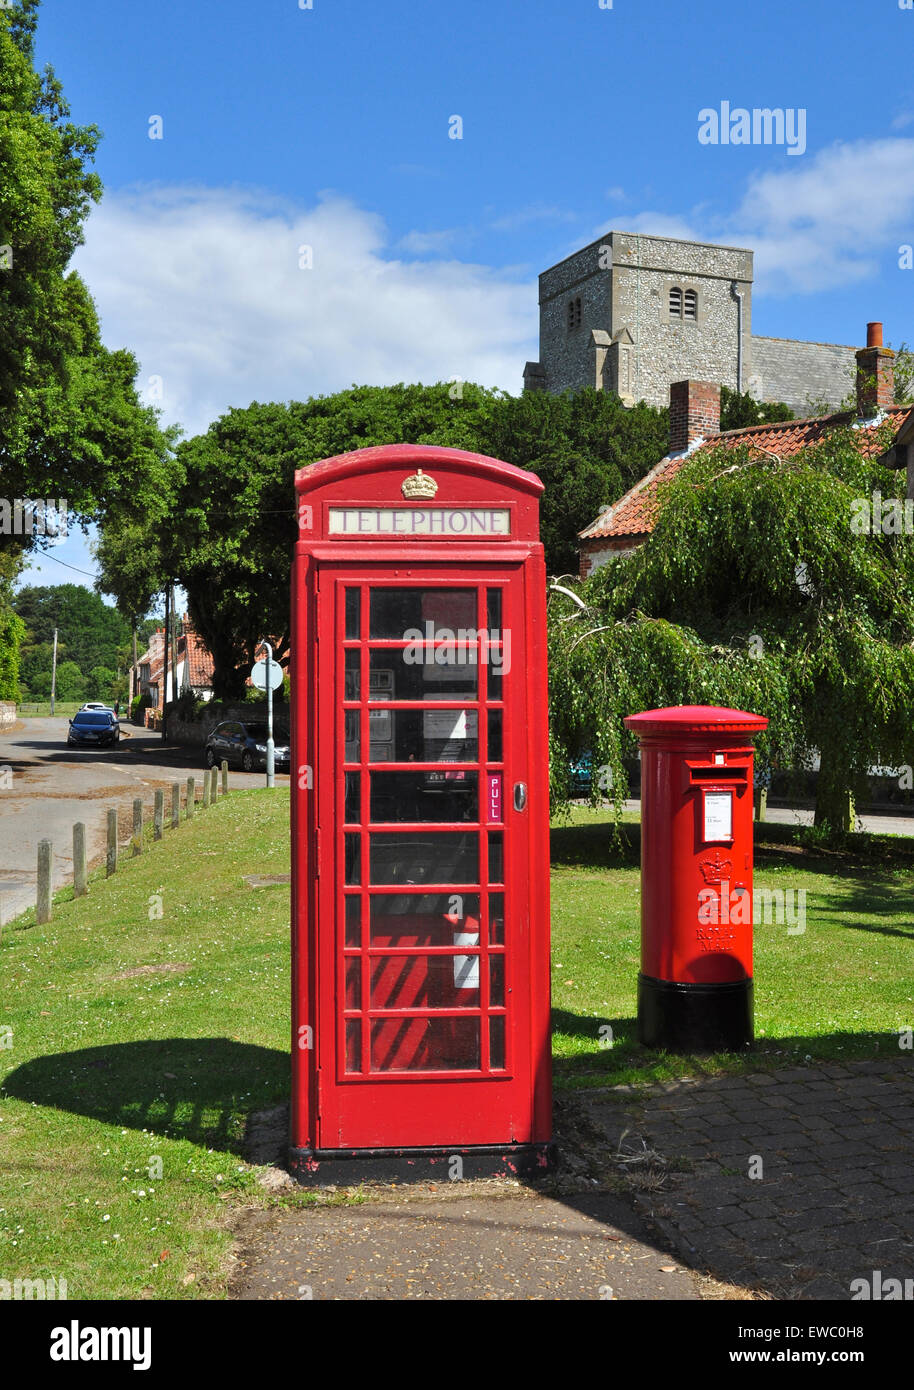 Telephone kiosk, post pillar box and church tower, Thornham, Norfolk, England, UK - Stock Image